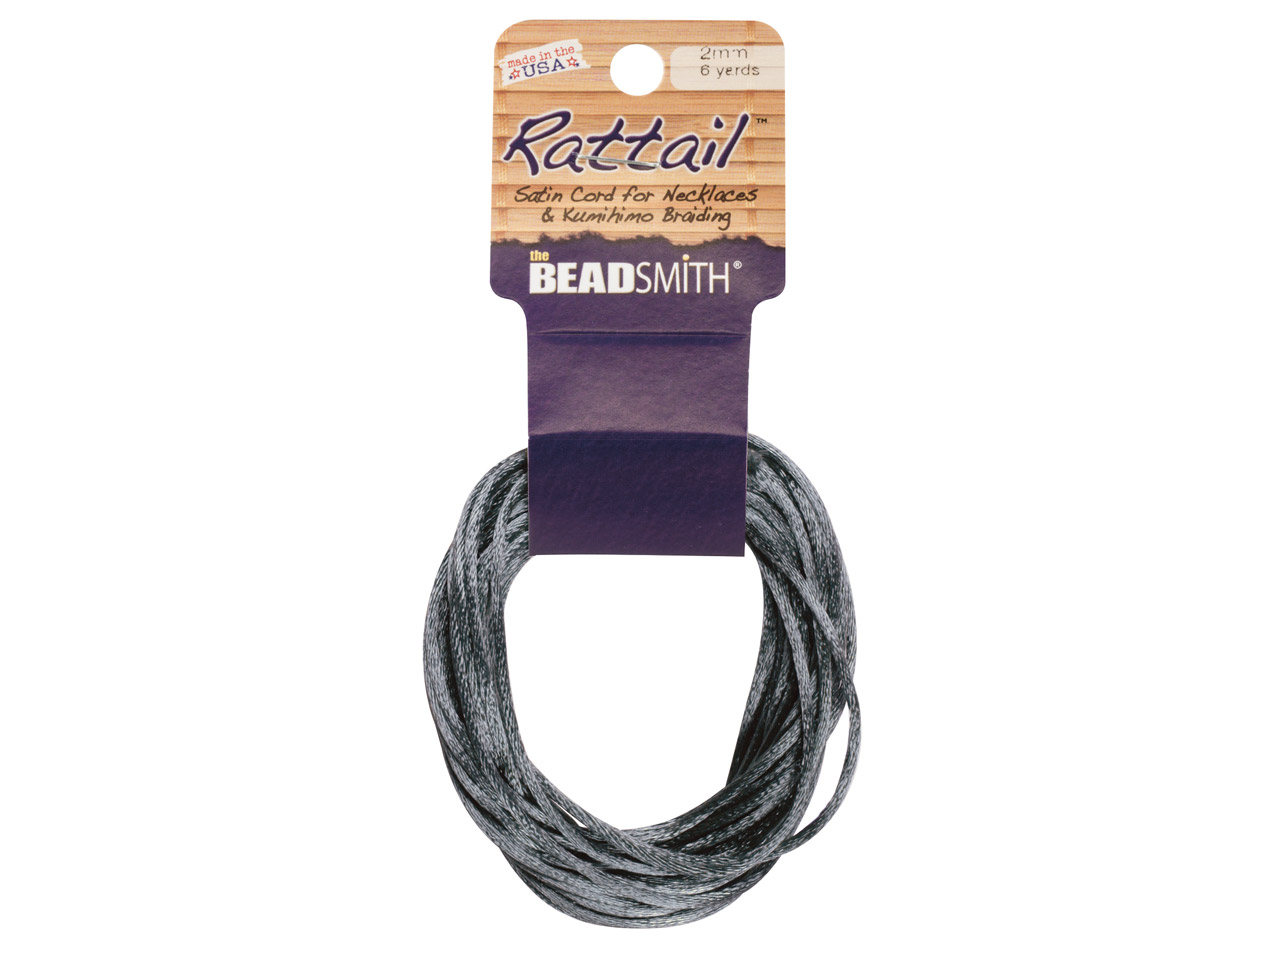 Beadsmith Rattail Satin Cord Dark  Grey 2mm X 5m